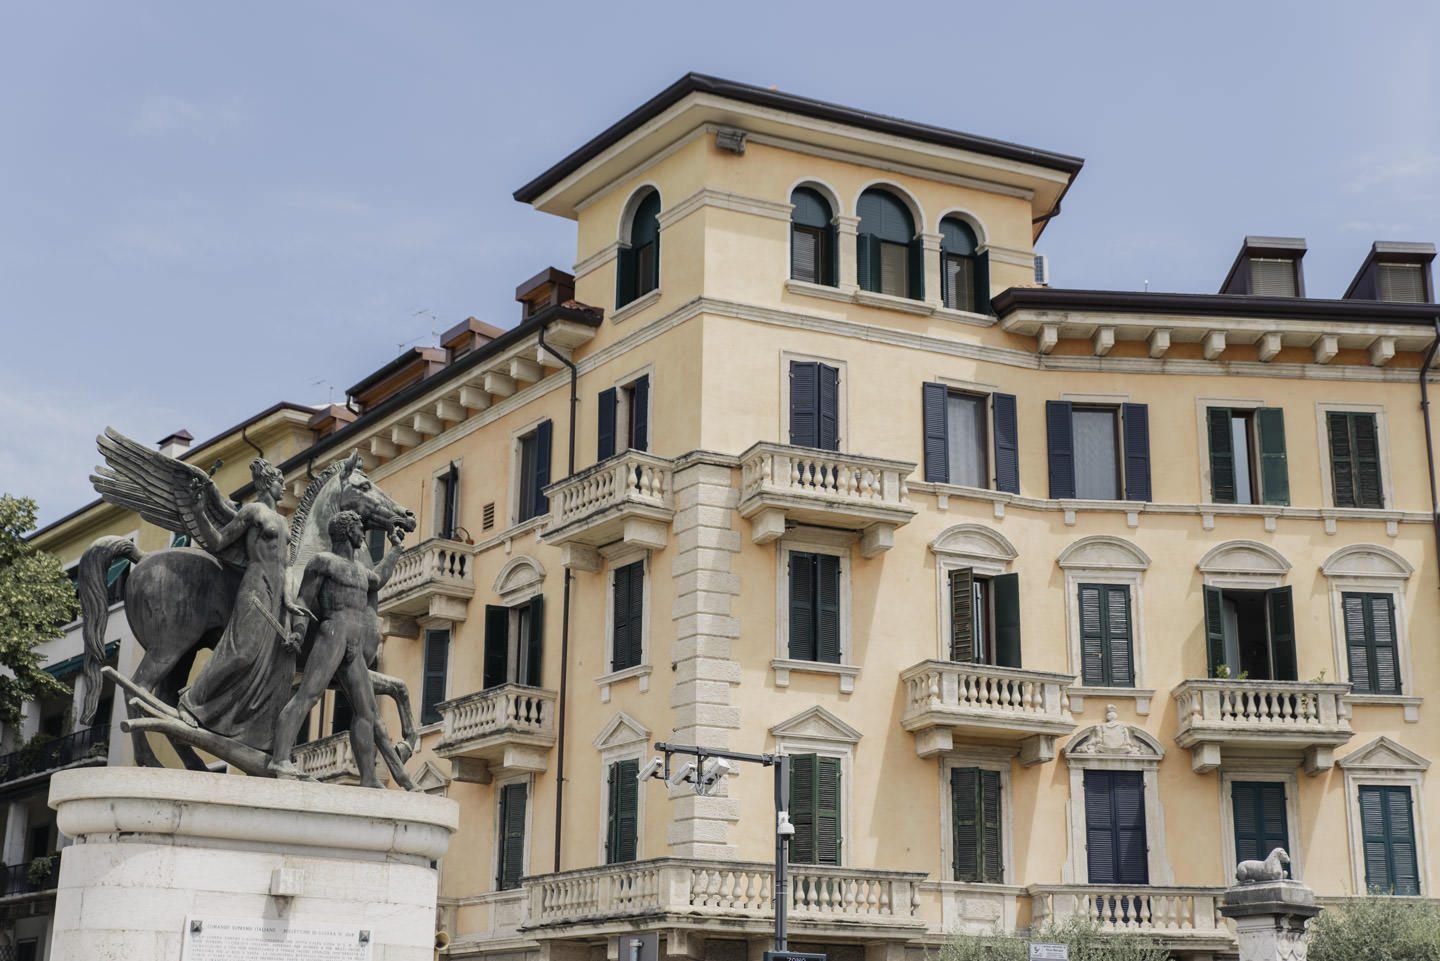 Blog-Mode-And-The-City-Lifestyle-Voyage-Italie-Trieste-Padoue-lac-Come-Verone-23